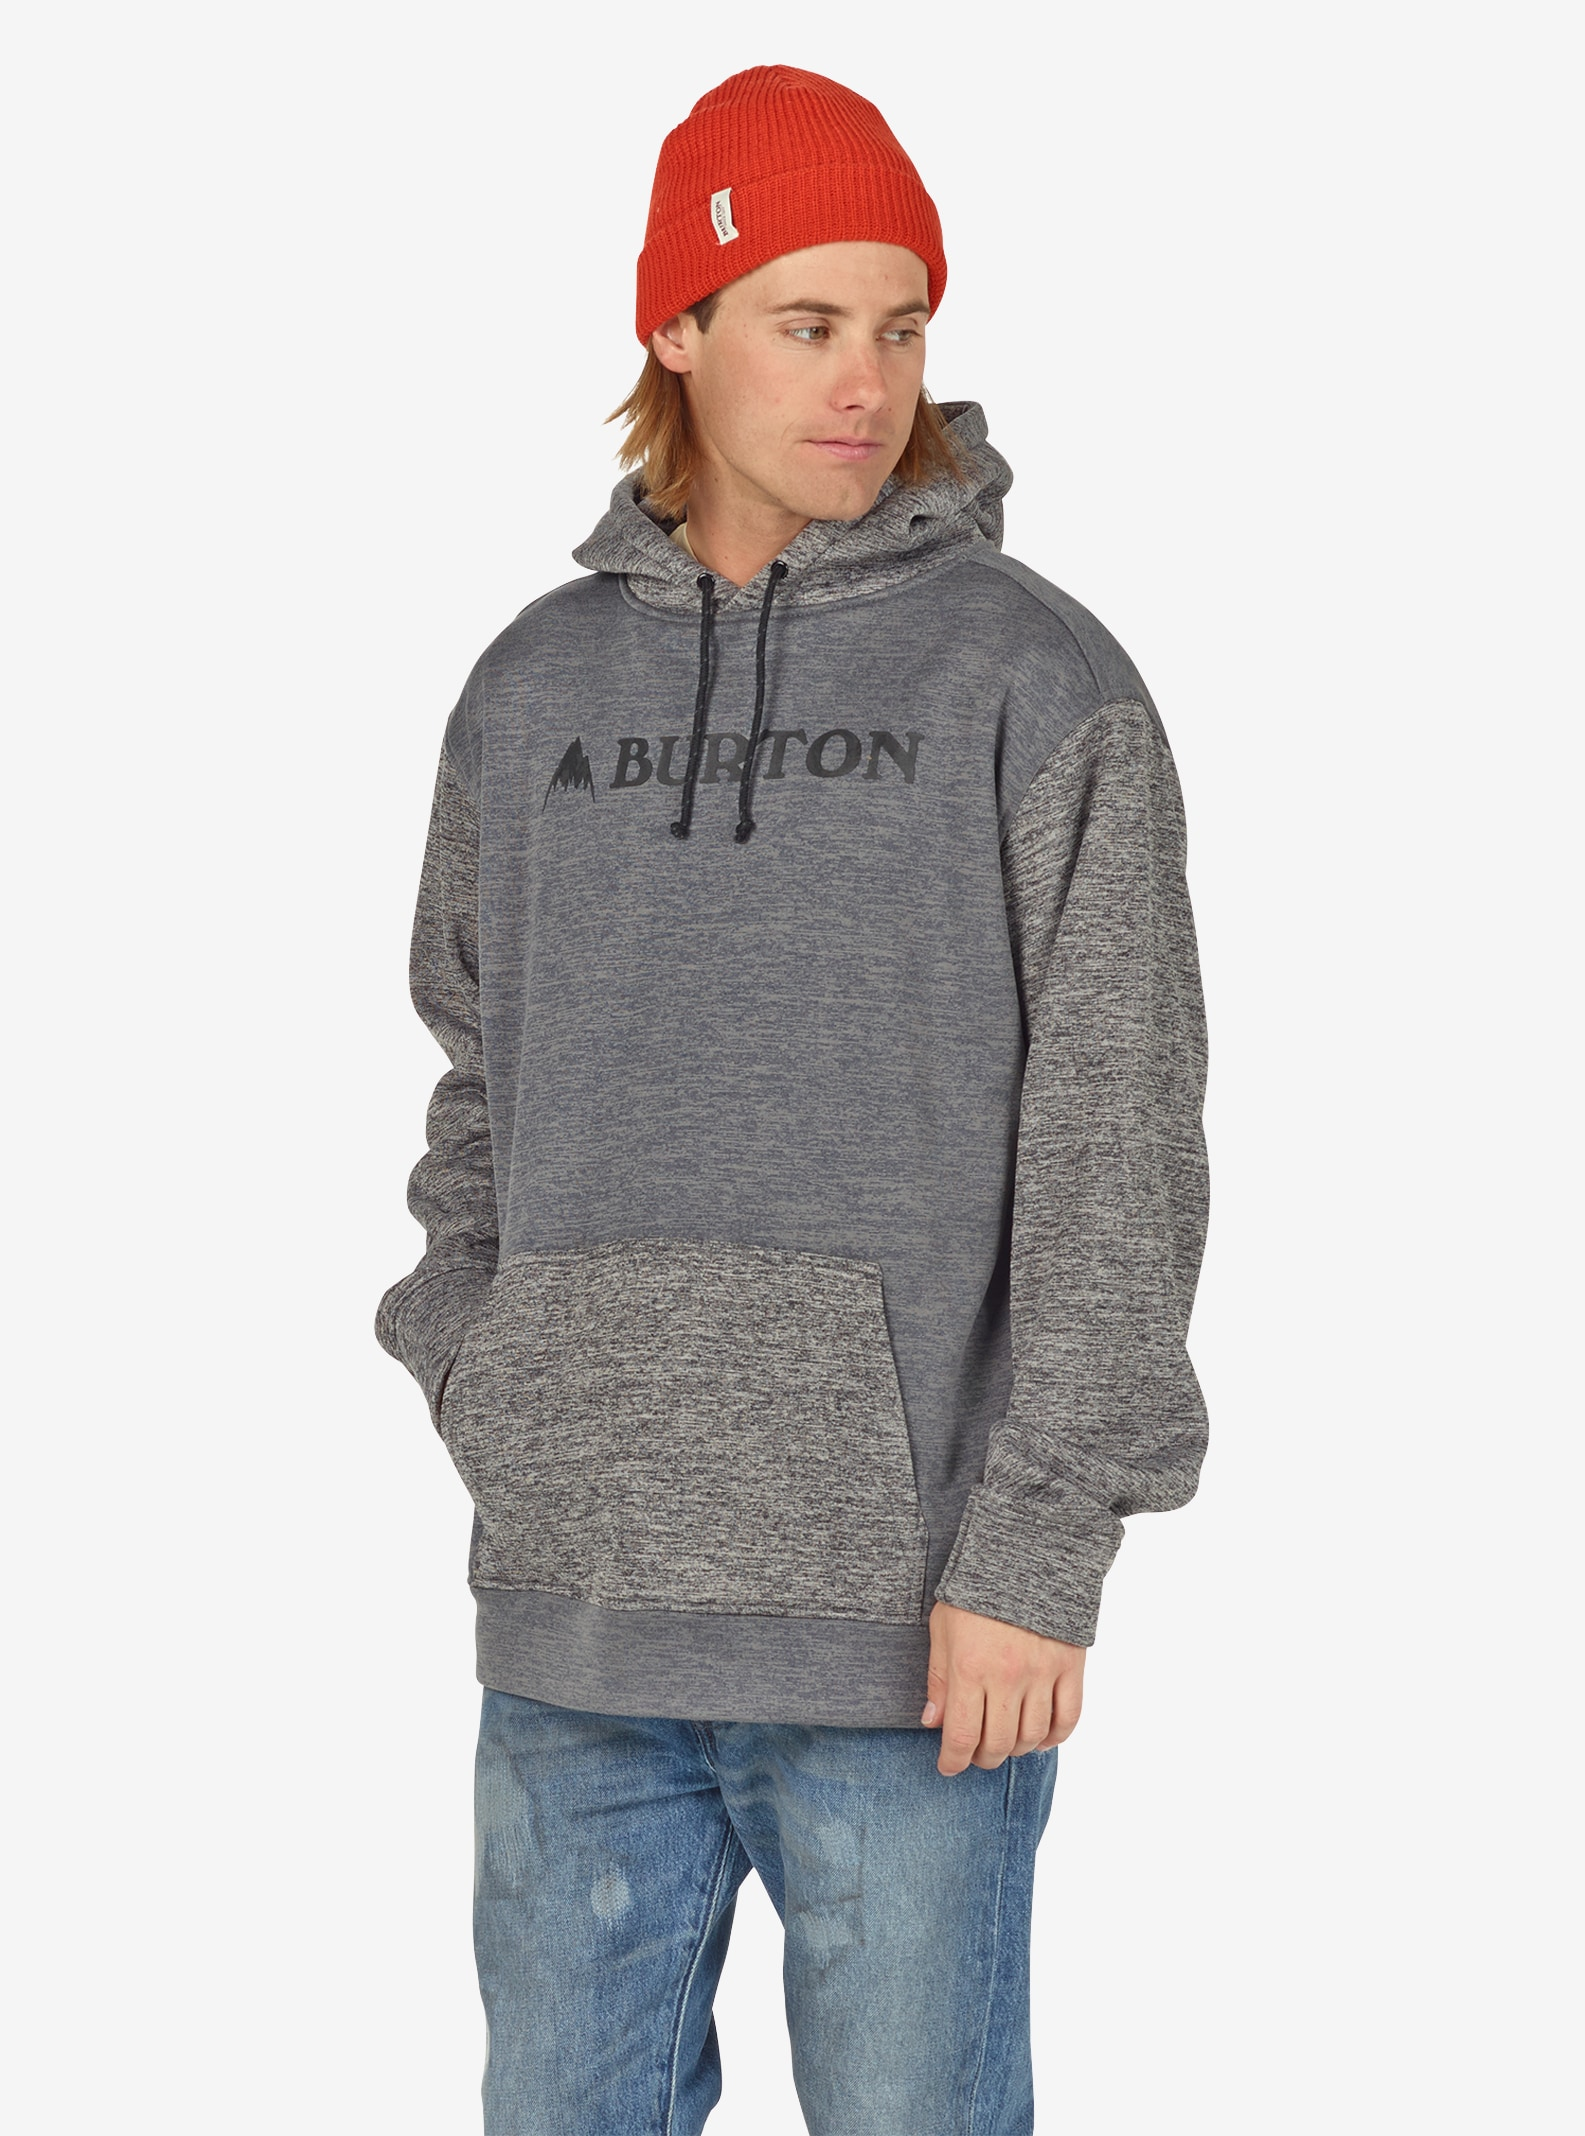 Men's Burton Oak Pullover Hoodie shown in Shade Heather / True Black Heather